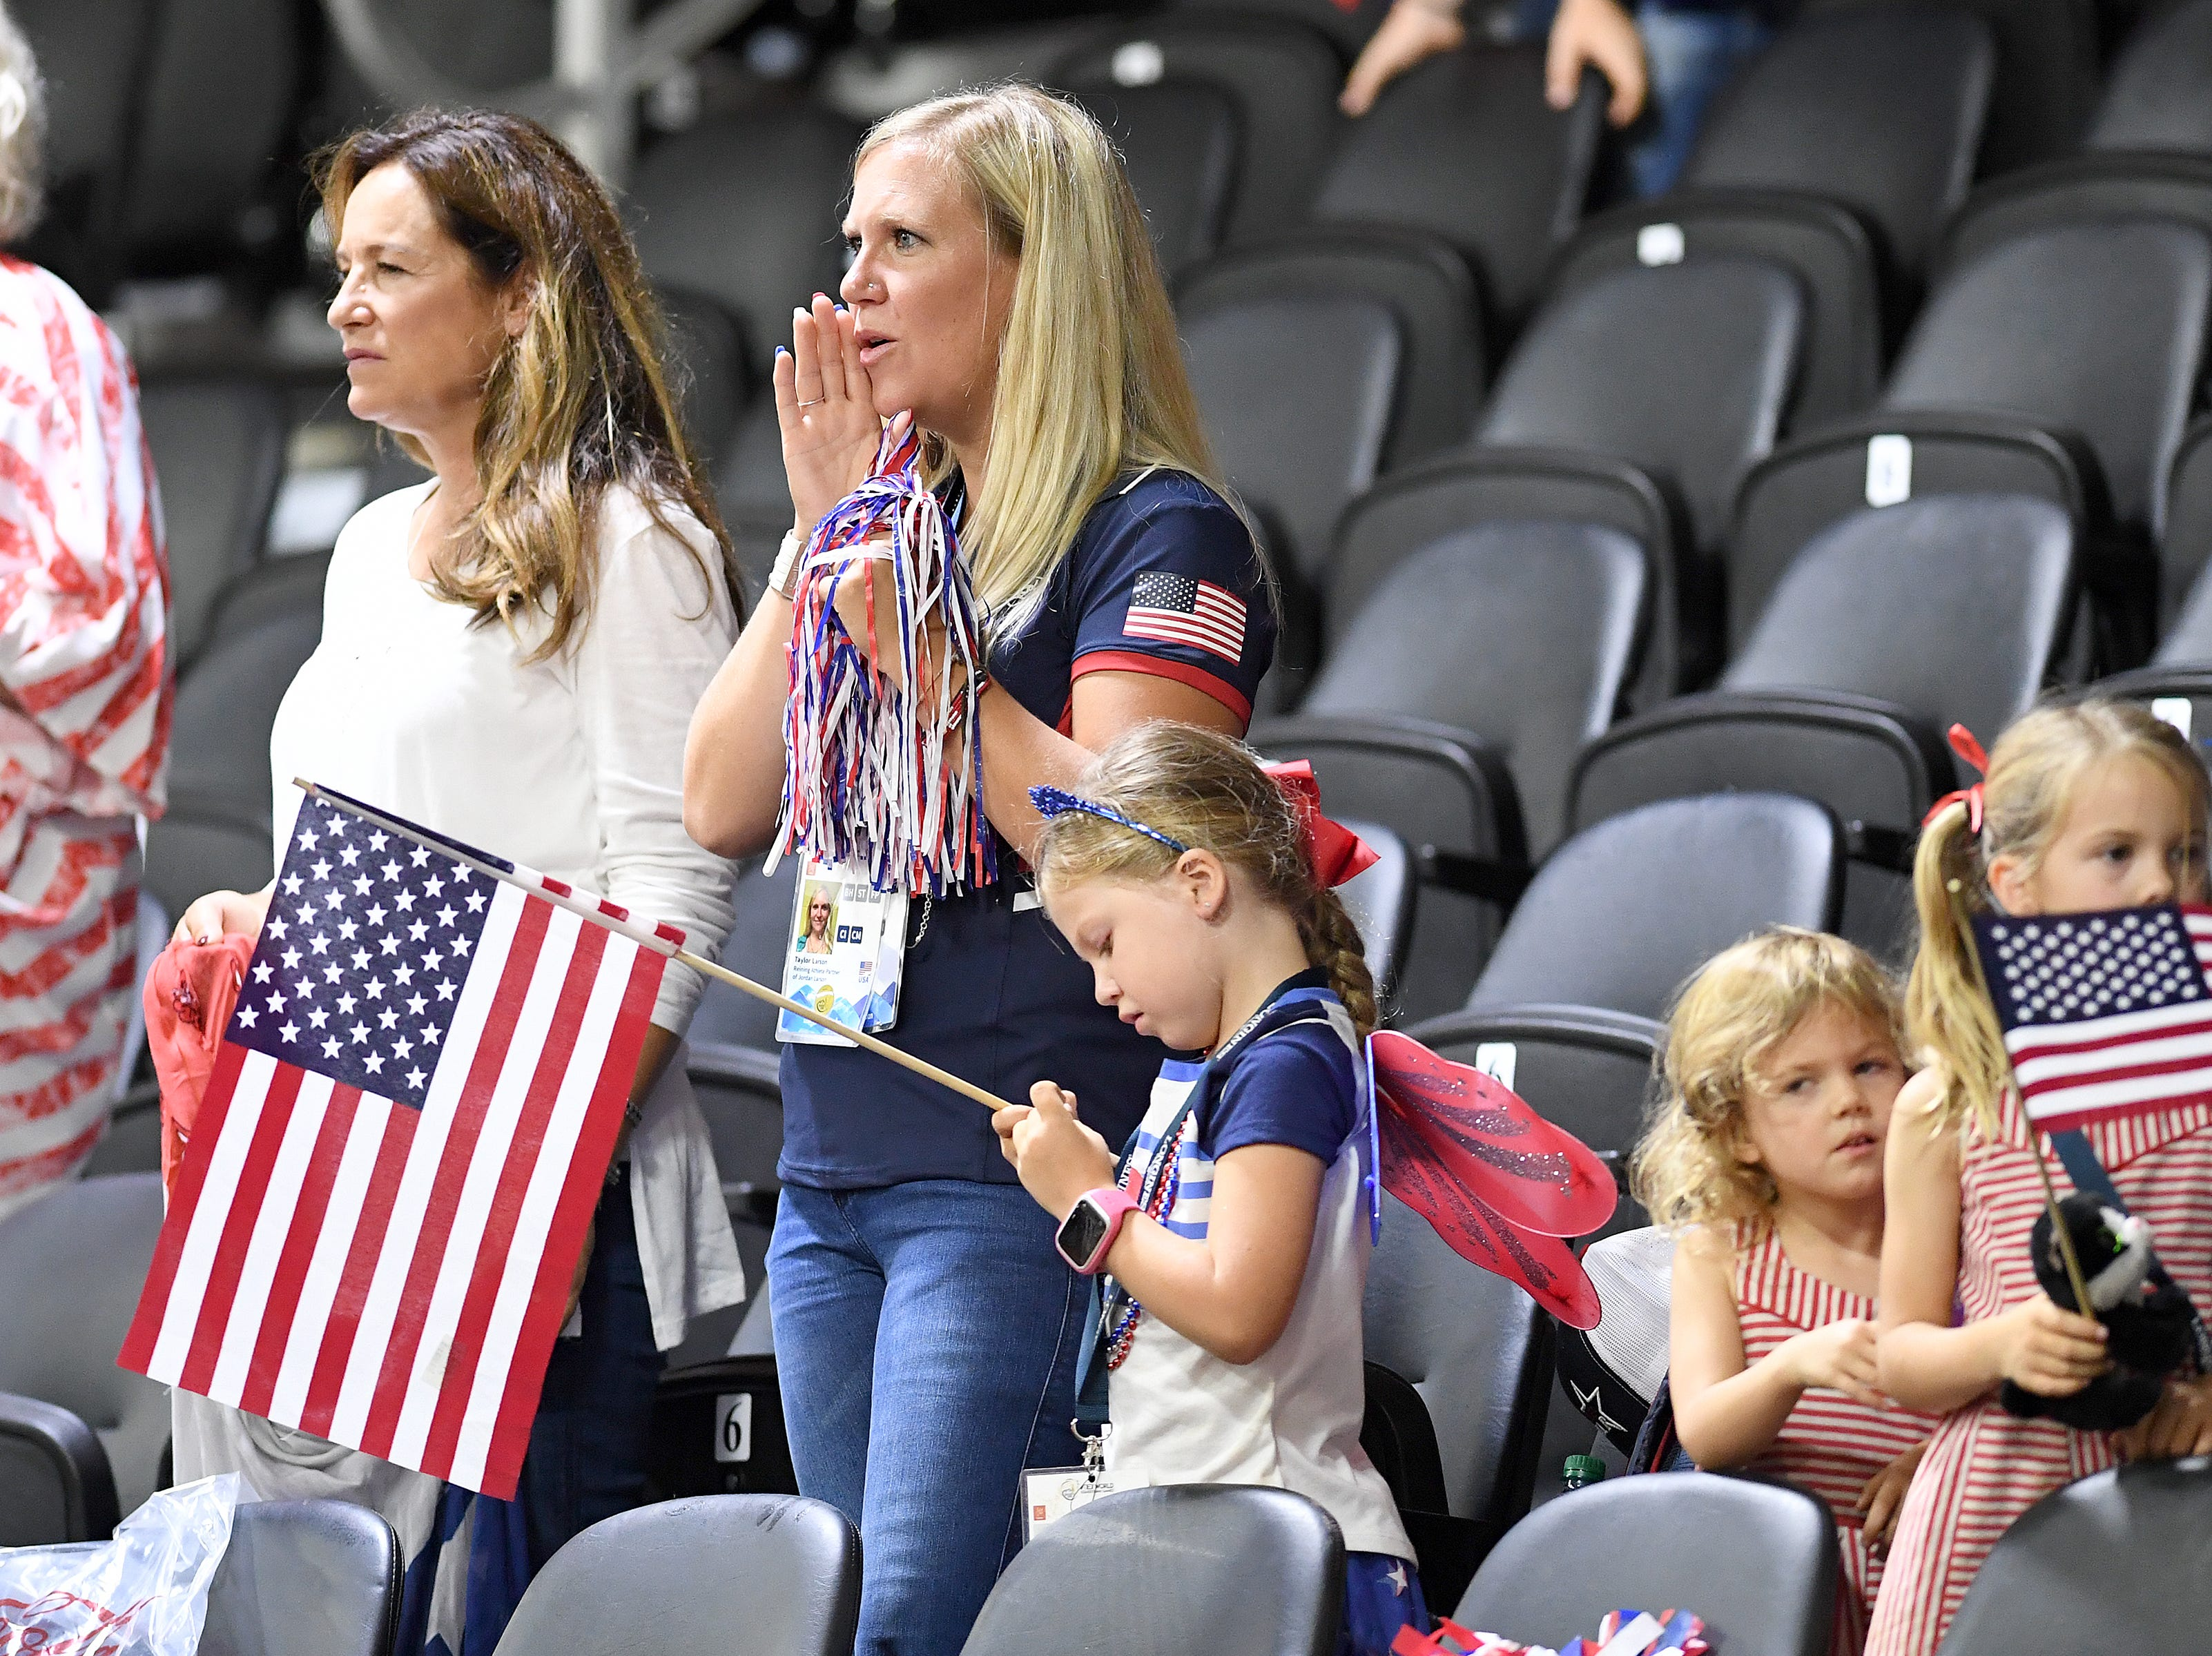 American fans cheer for Cade Mccutcheon during the reining competition of the FEI World Equestrian Games at the Tryon International Equestrian Center on Sept. 12, 2018.